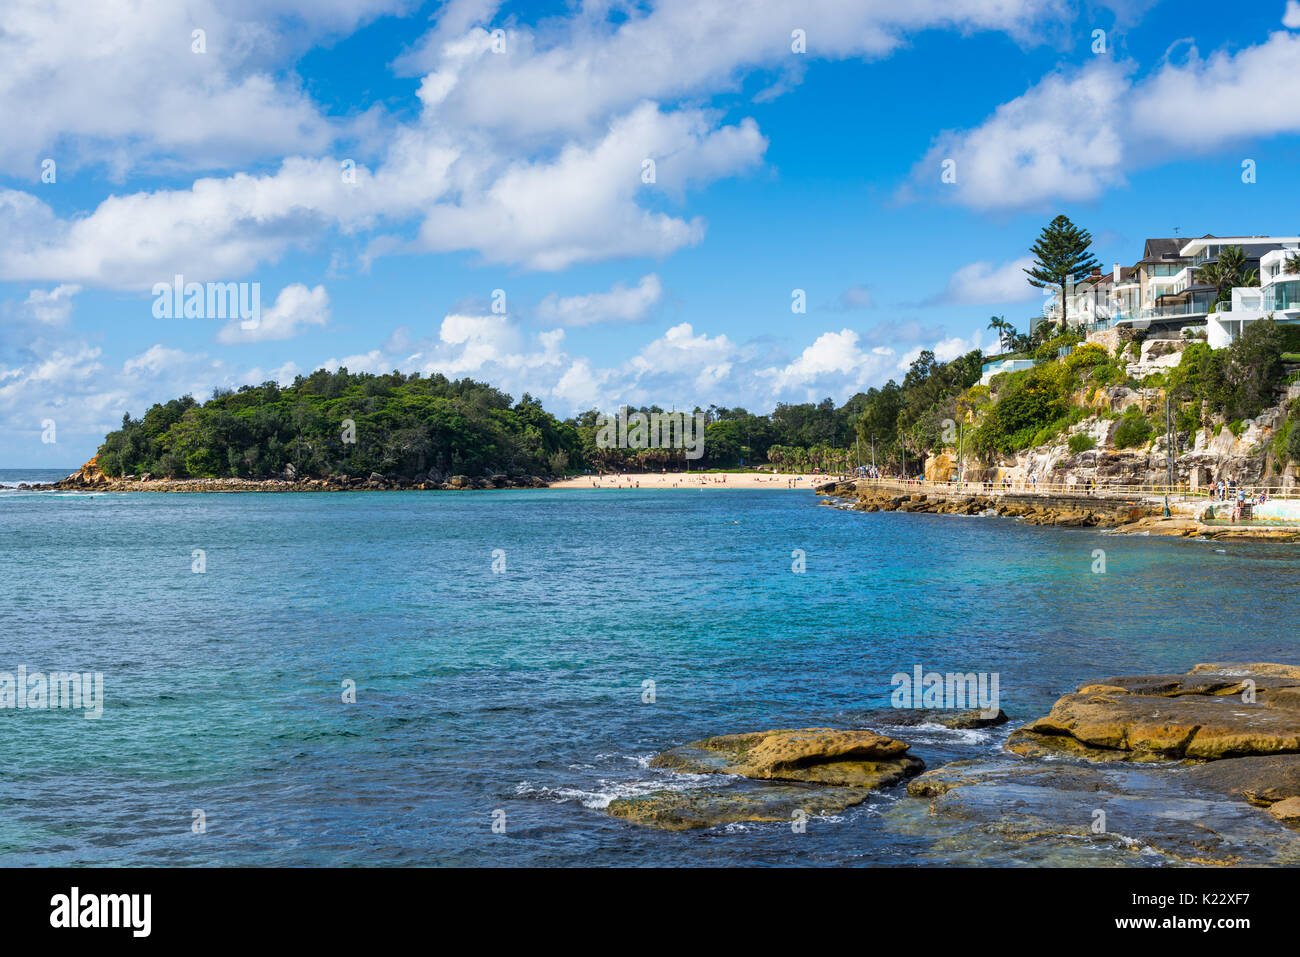 Manly seafront leading to Shelly beach, Northern beaches, Sydney, New South Wales, Australia. - Stock Image